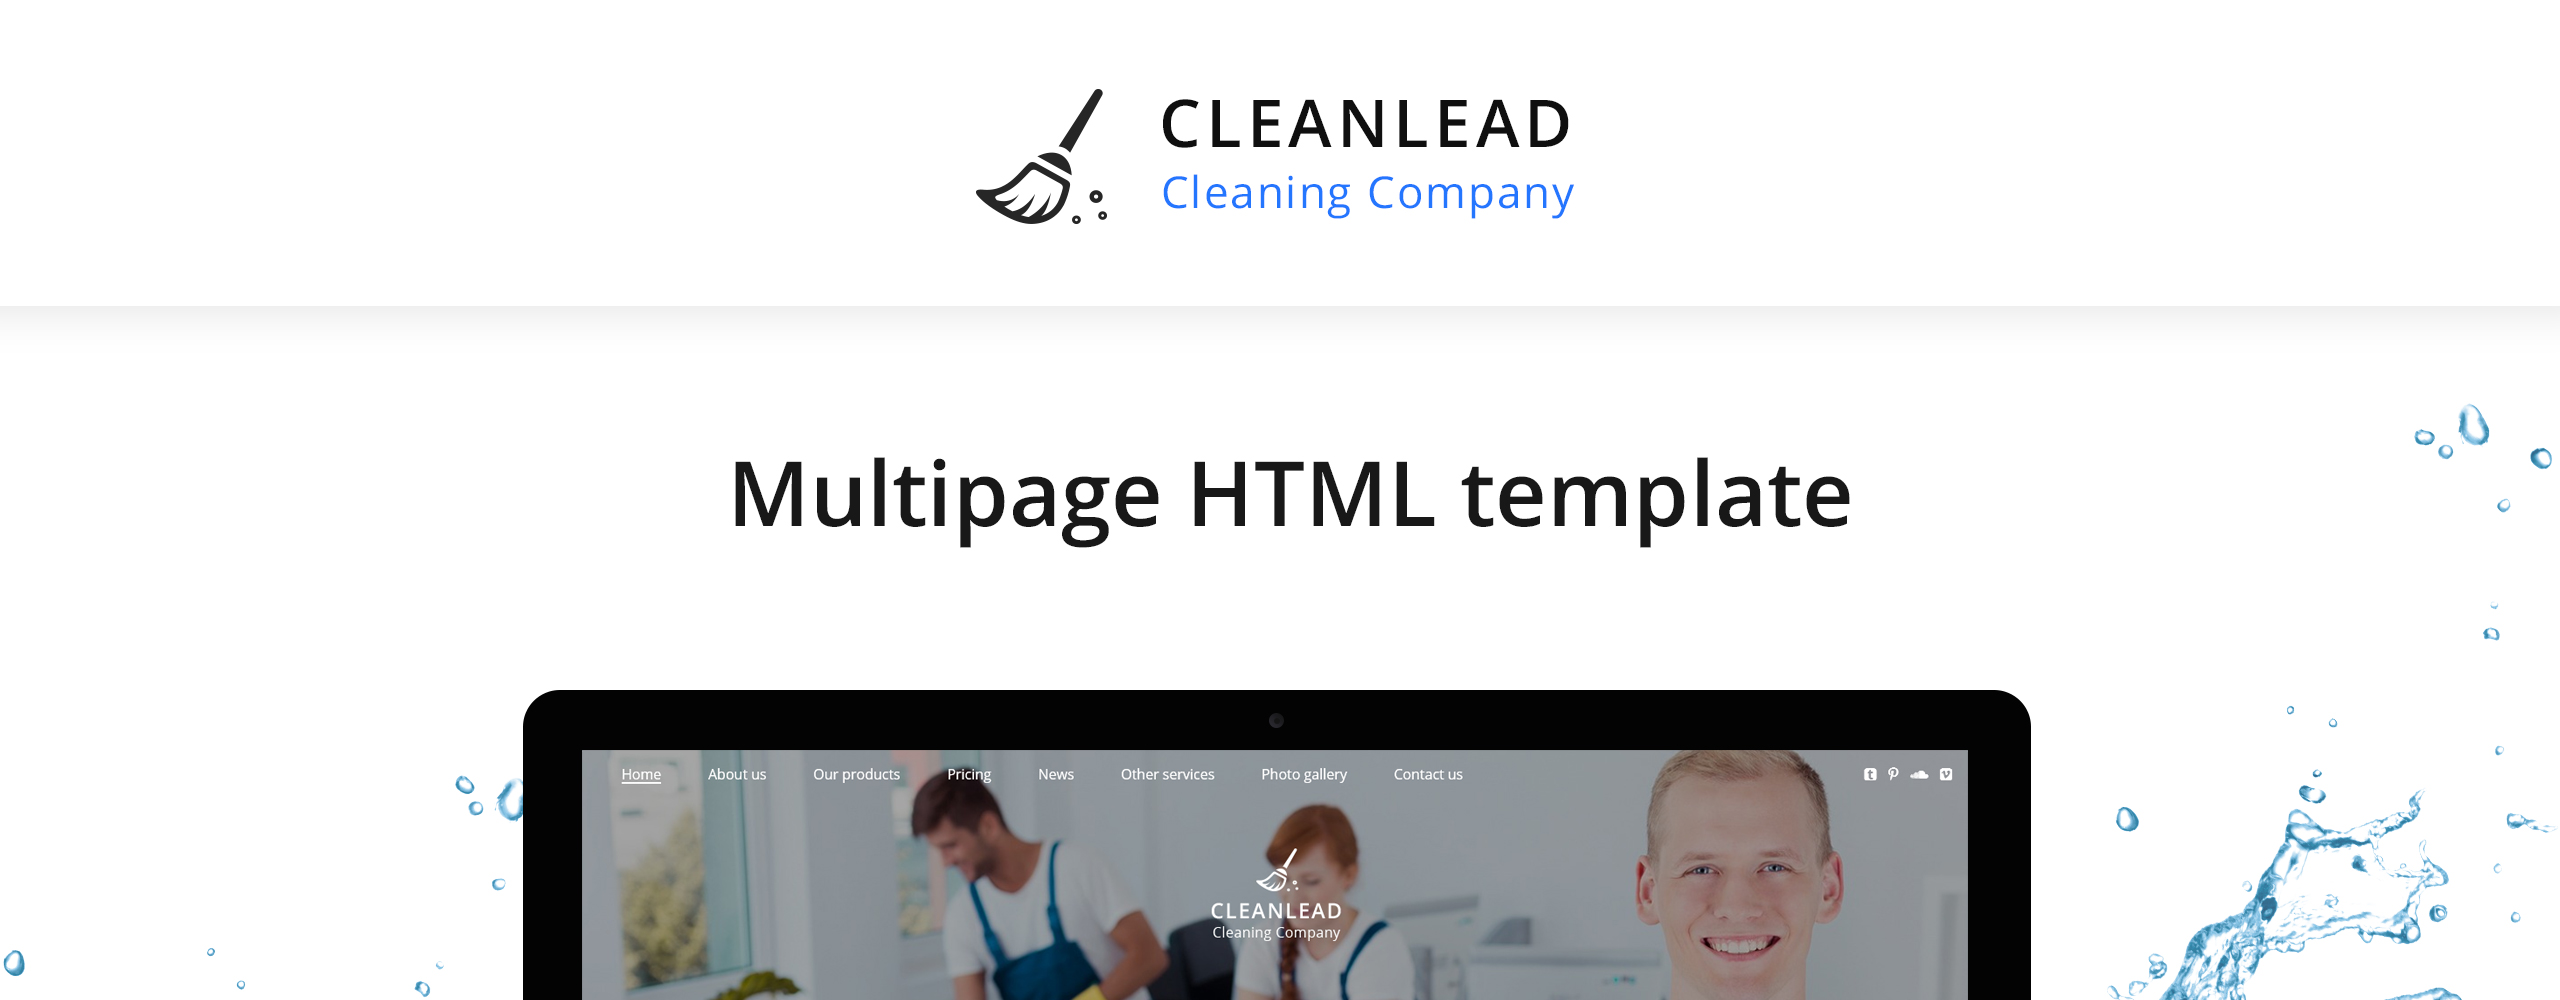 Cleanlead Cleaning Company Website Template